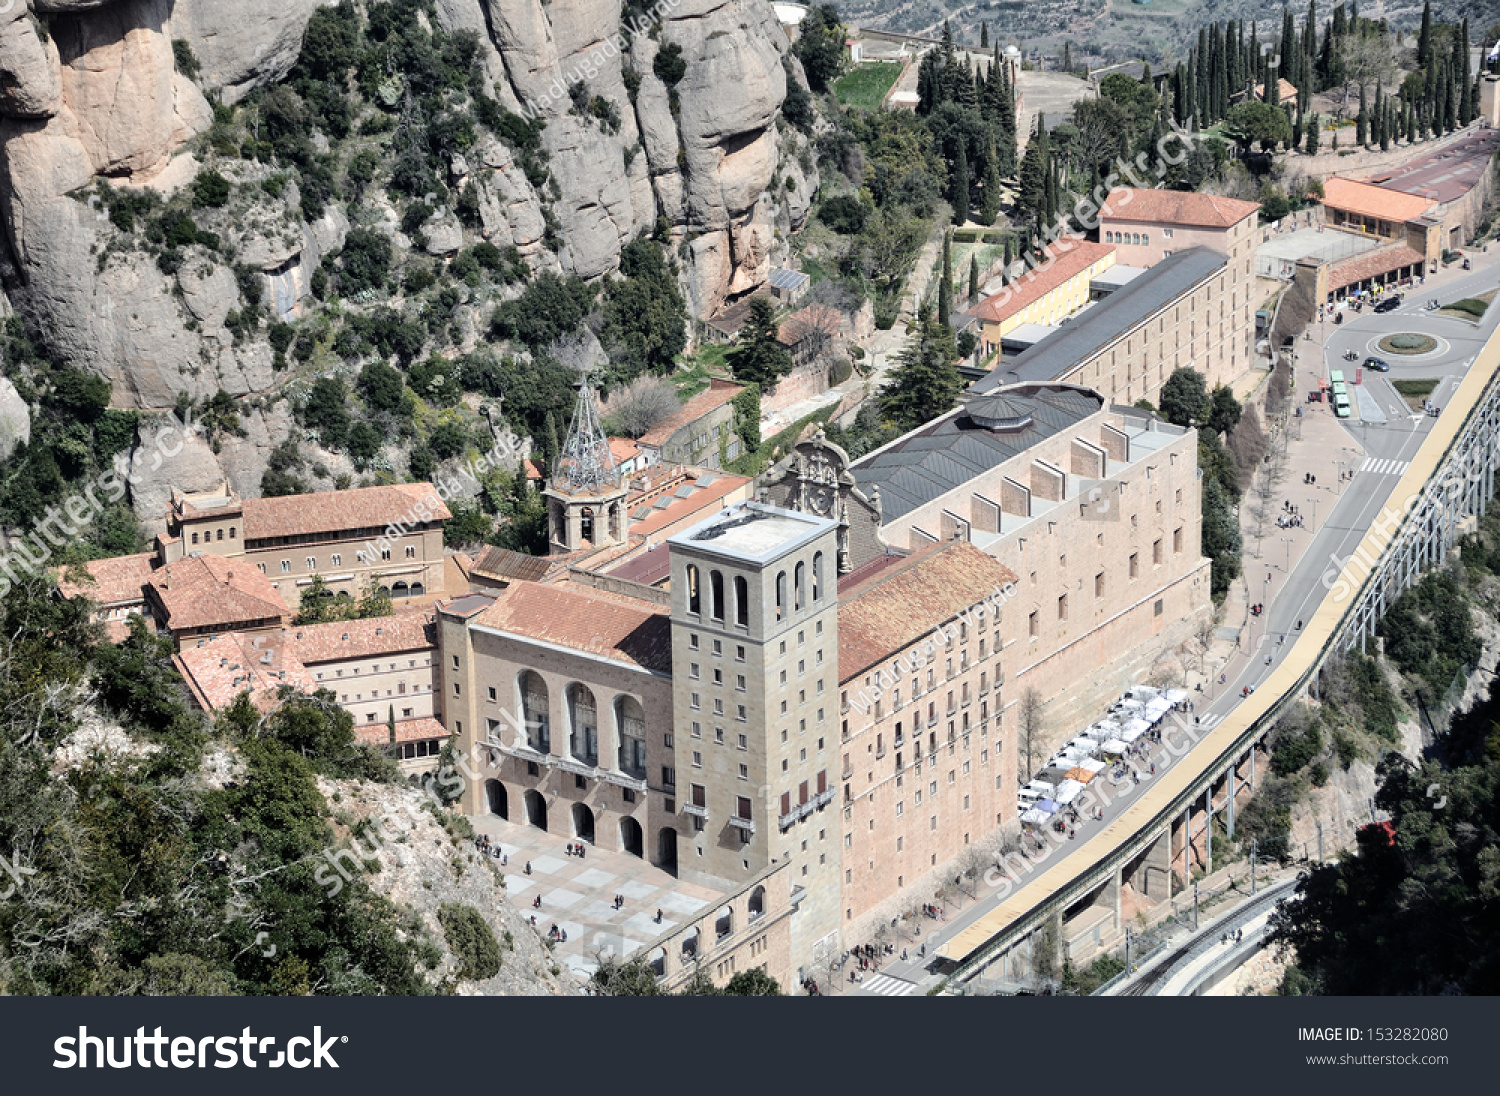 Aerial view of Santa Maria de Montserrat Monastery in Catalonia, Spain #153282080